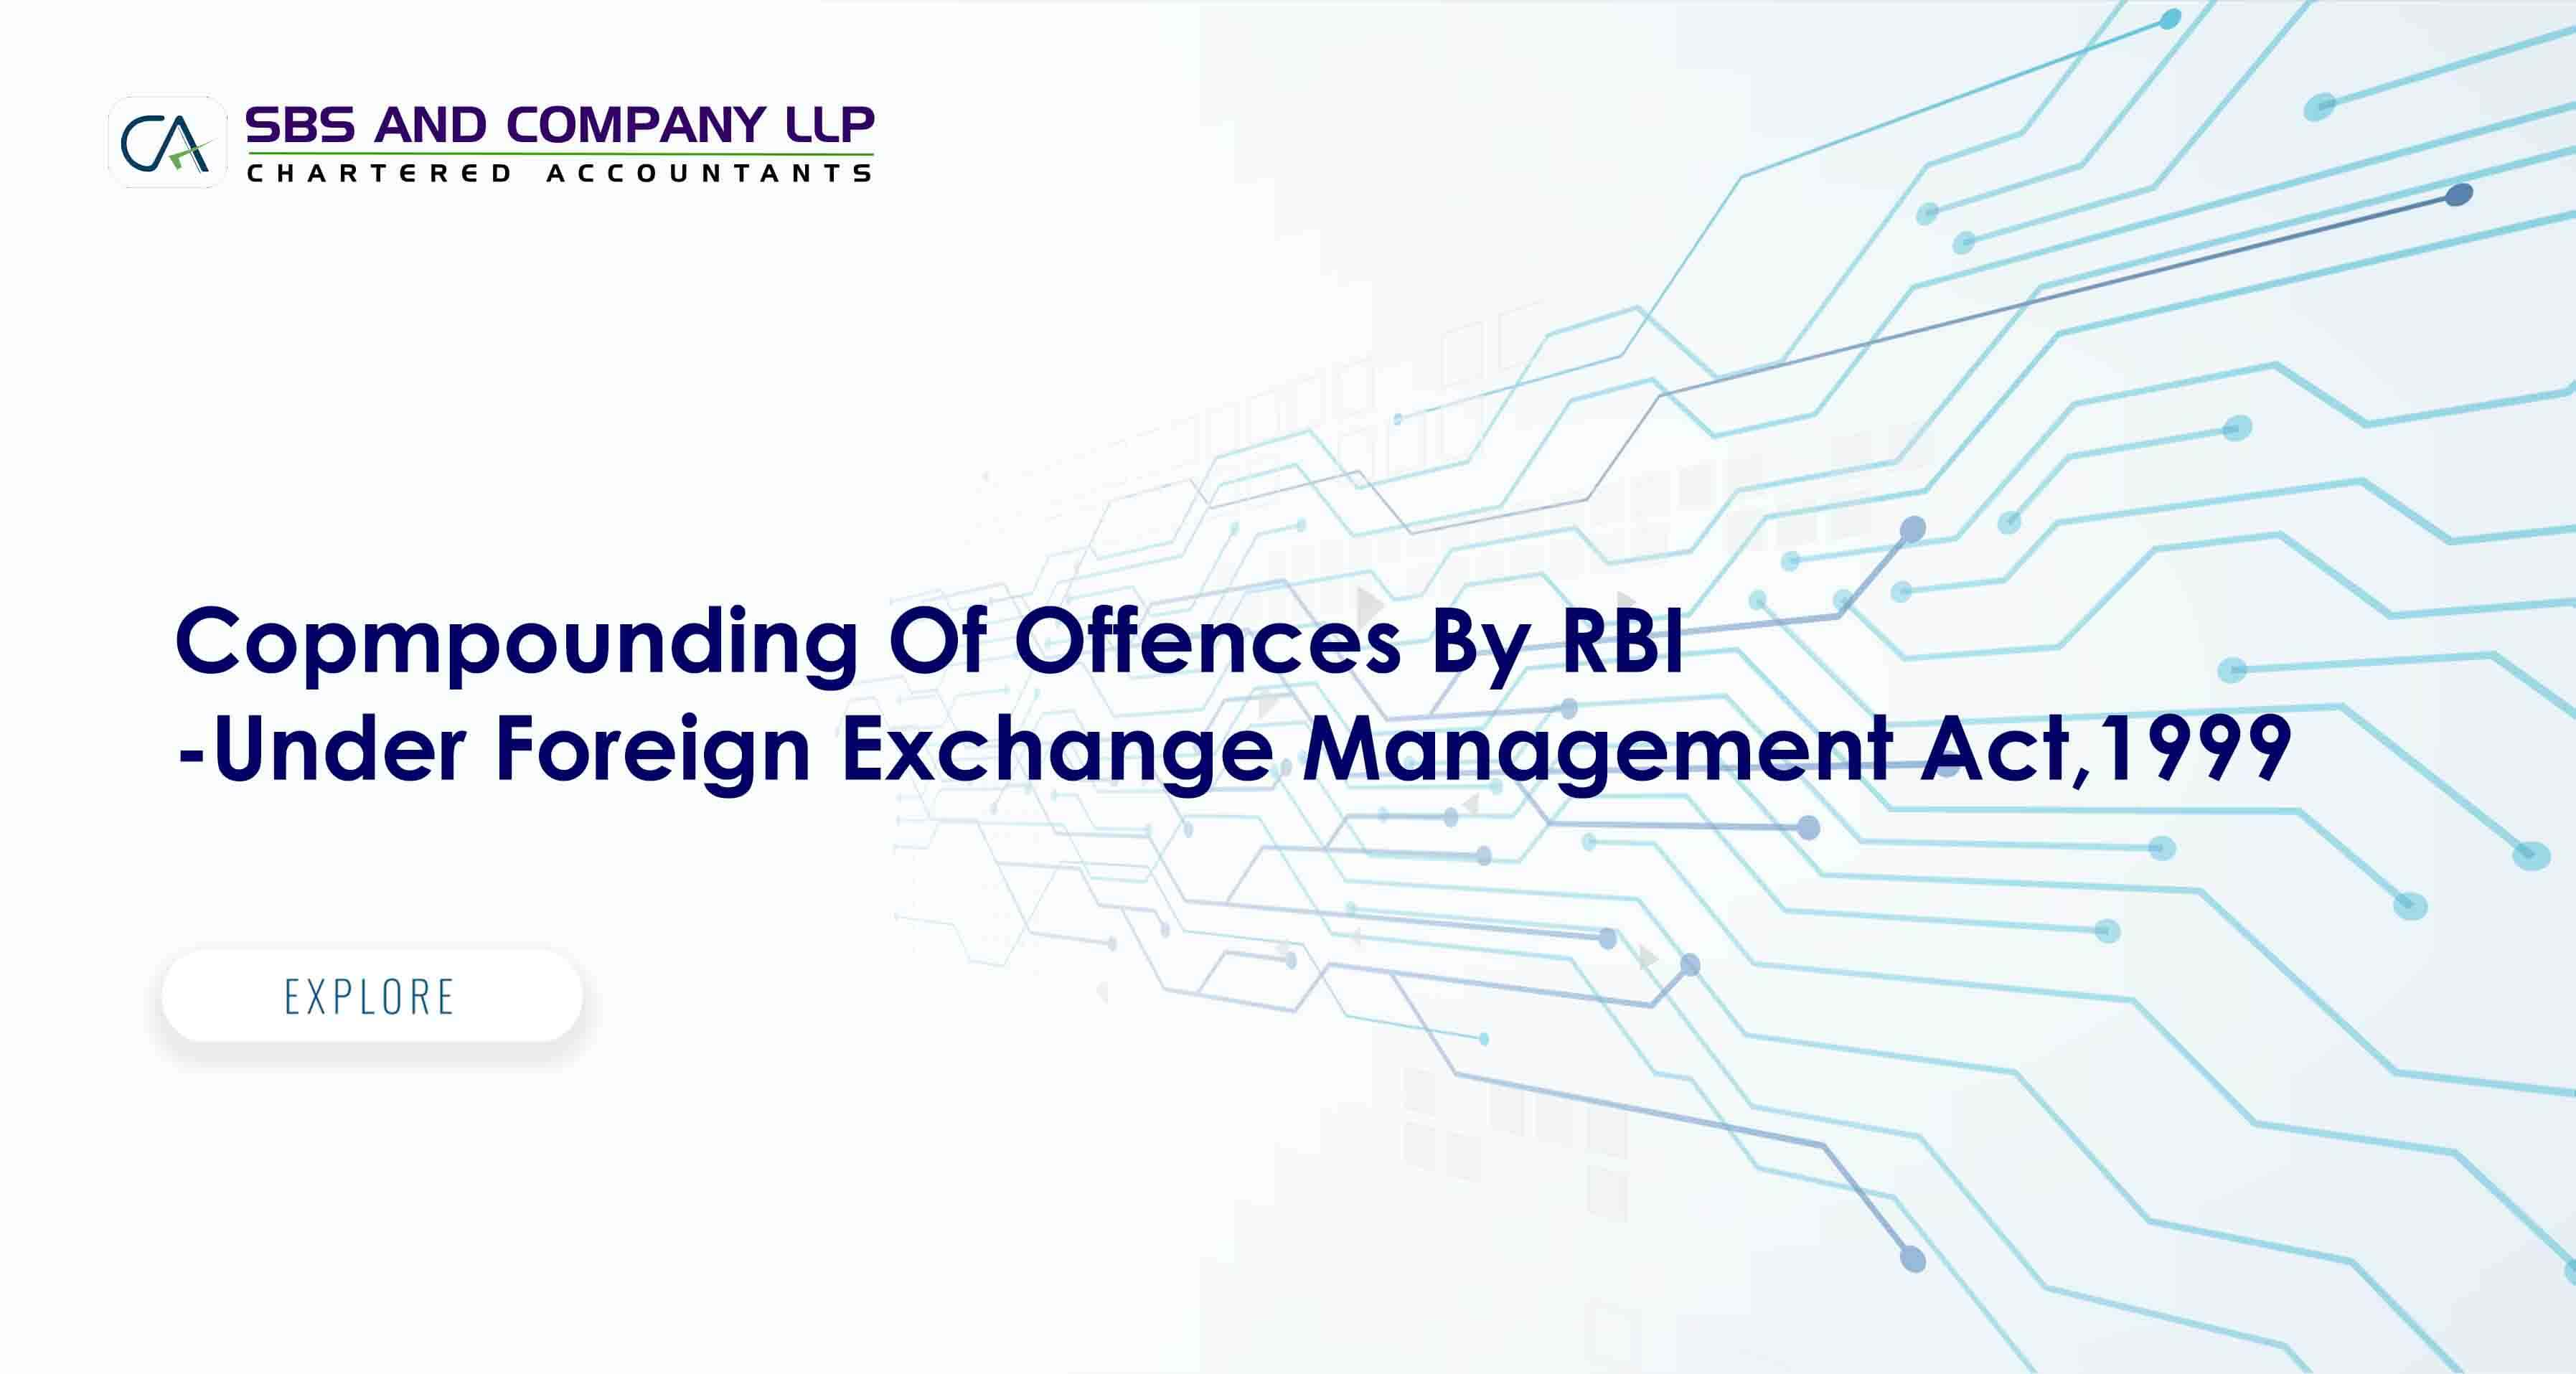 Copmpounding Of Offences By RBI-Under Foreign Exchange Management Act,1999